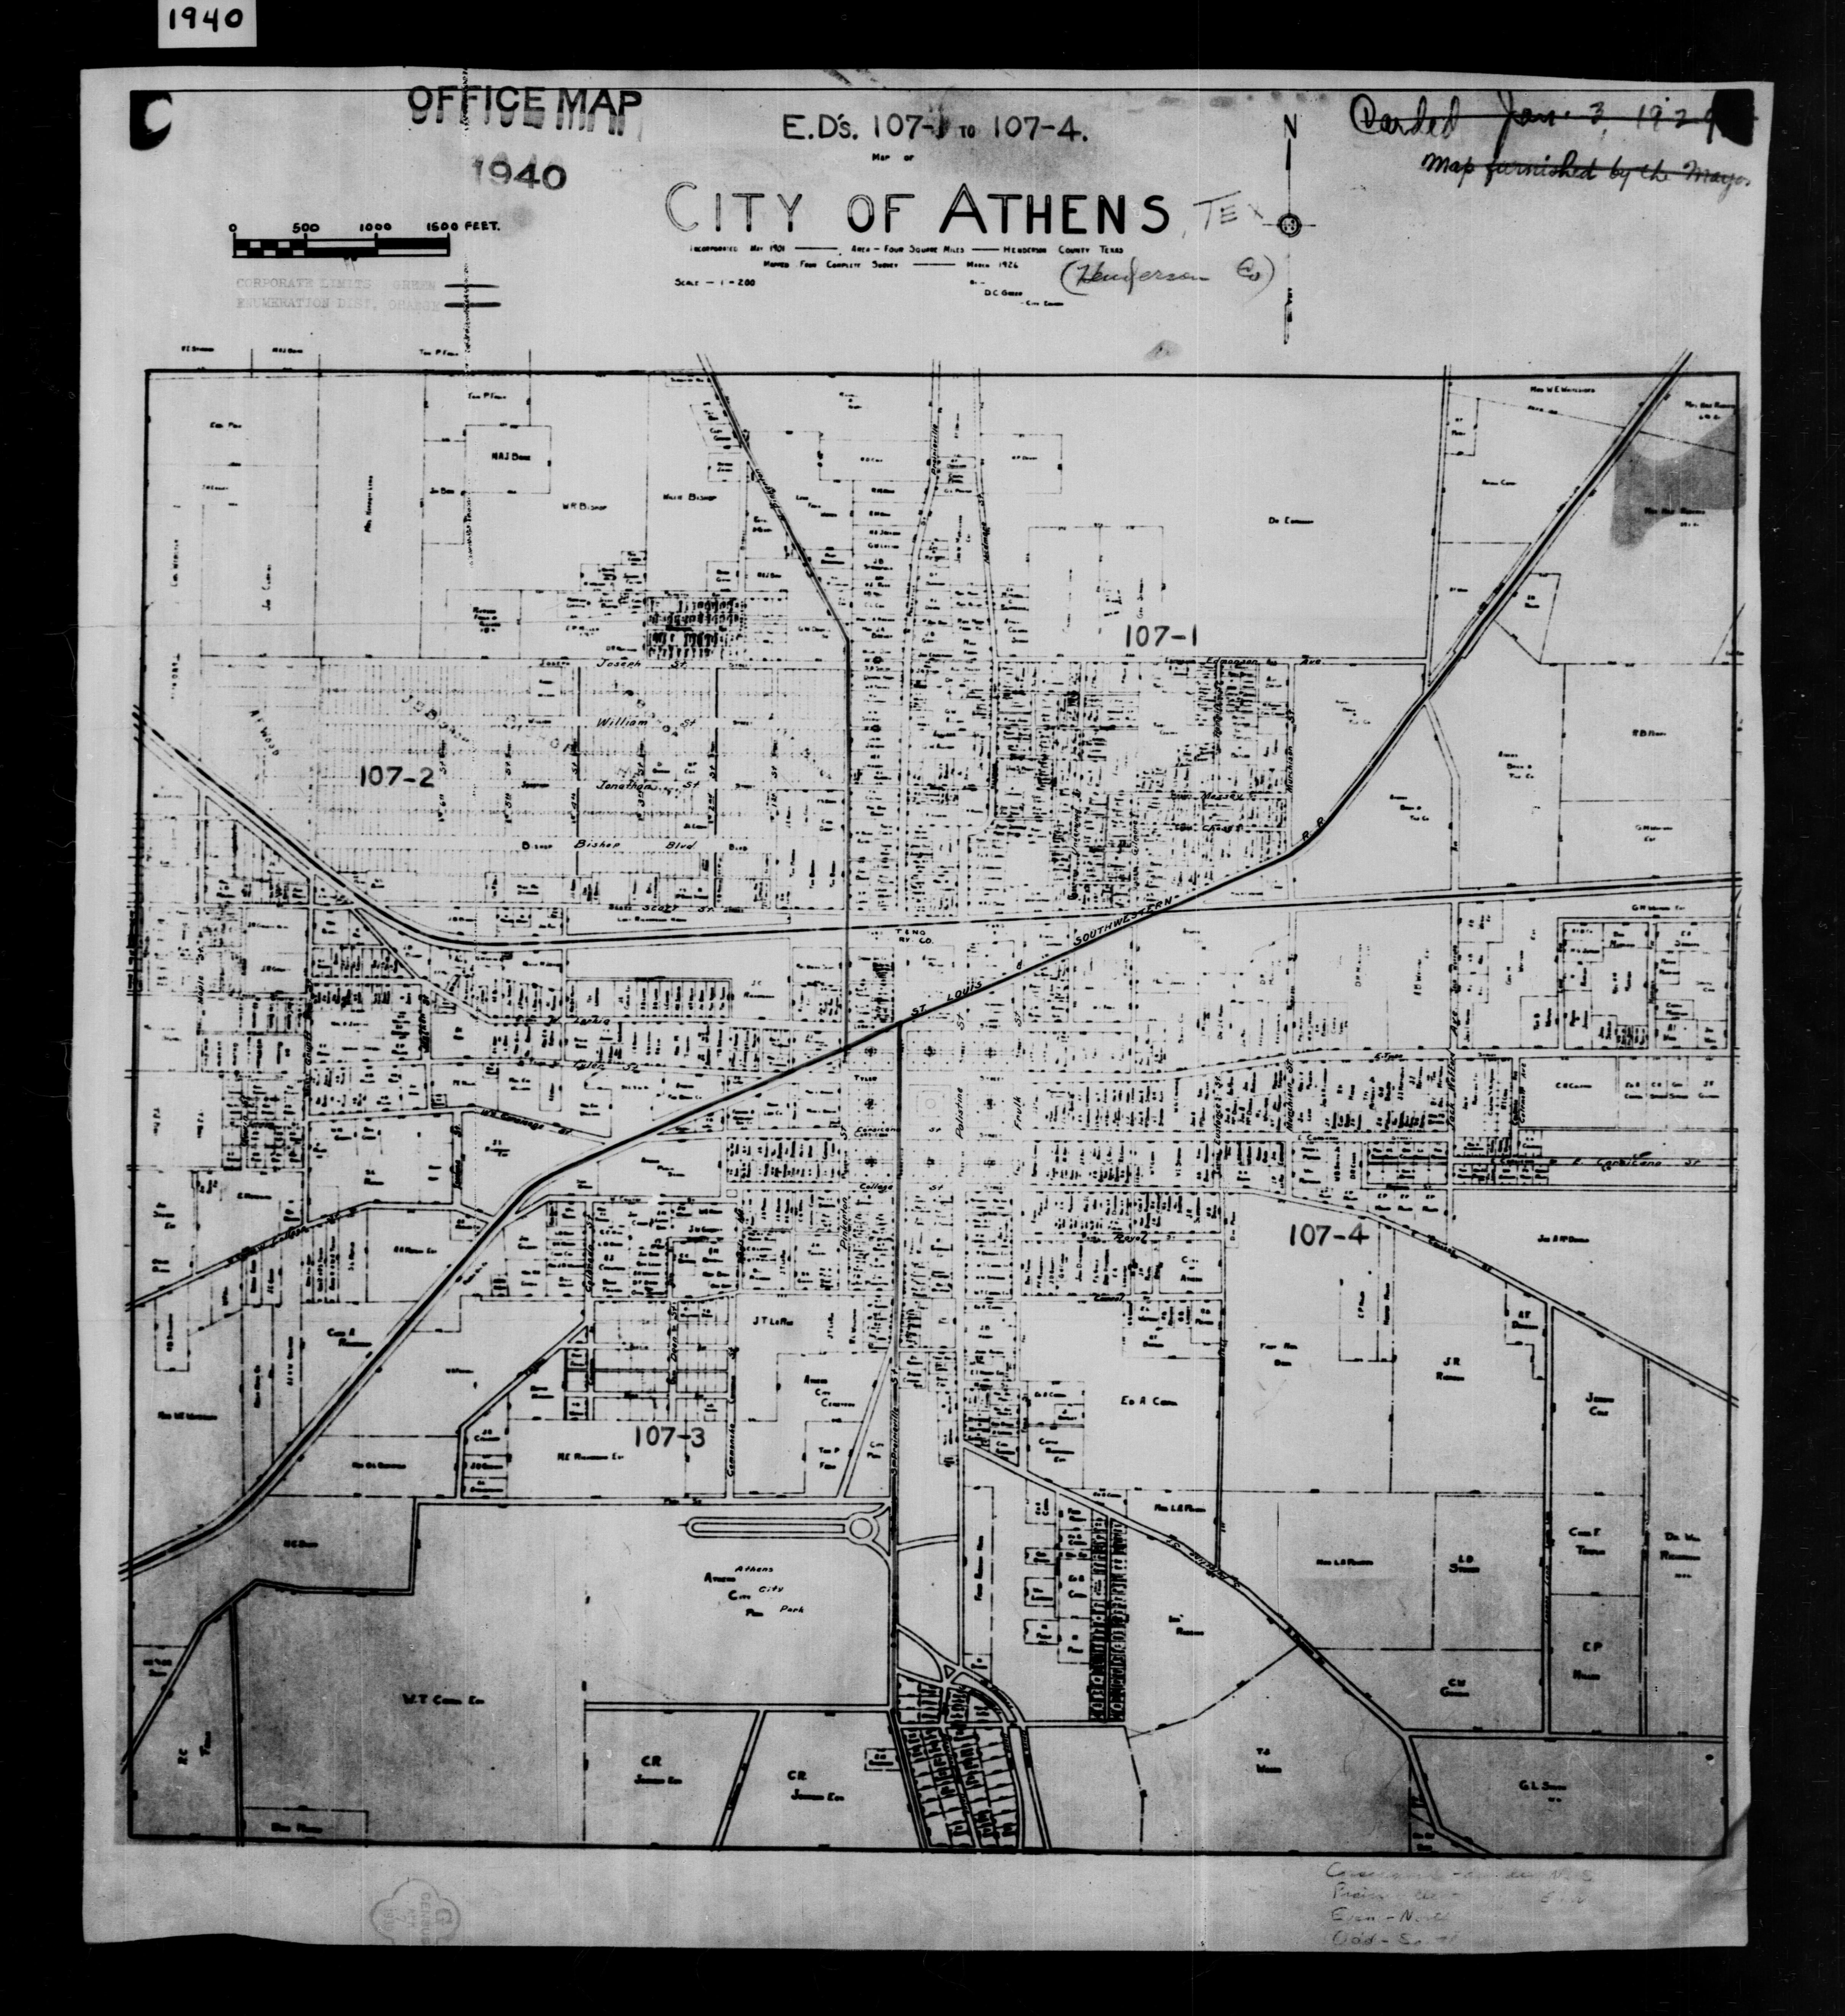 1940 Census Texas Enumeration District Maps - Perry-Castañeda Map on